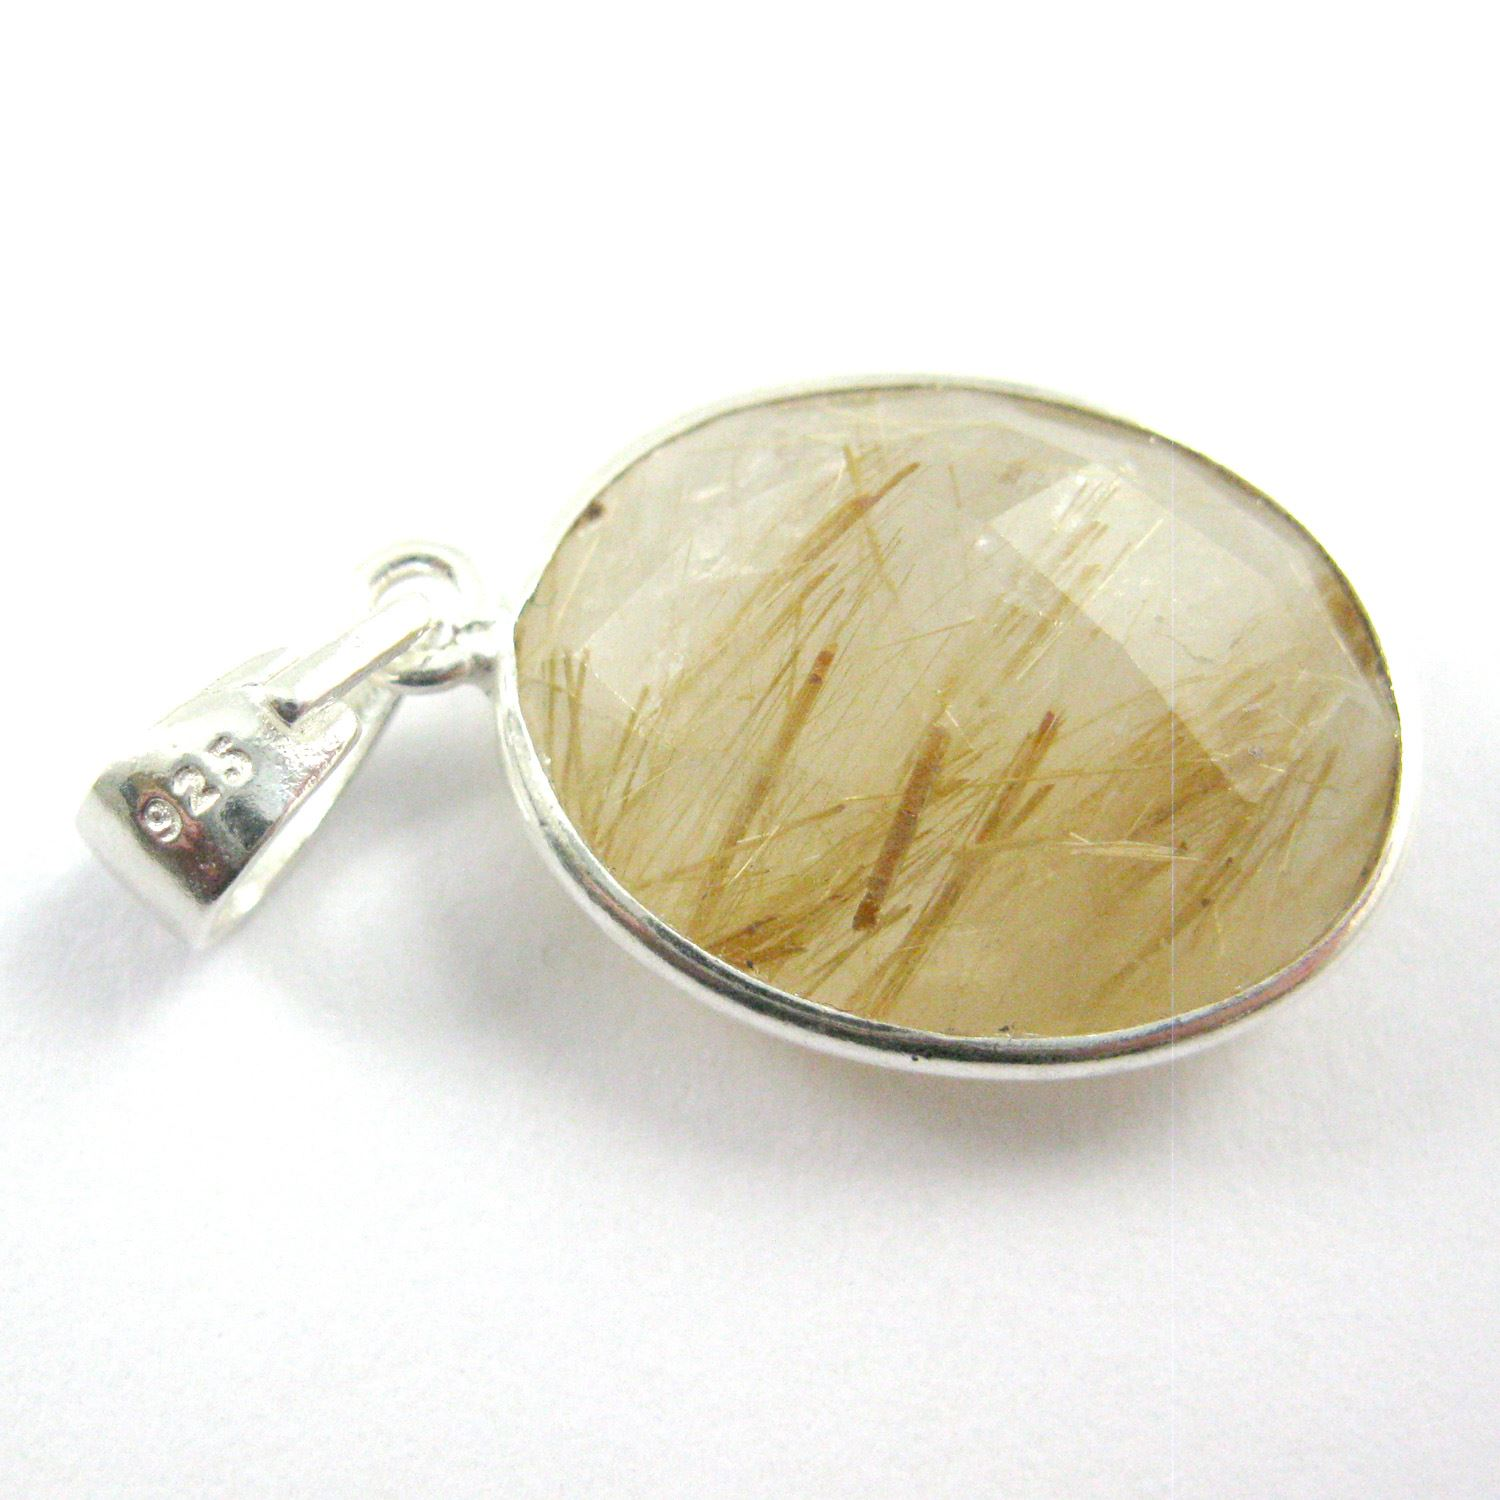 Bezel Gemstone Pendant with Bail - Sterling Silver Oval Gem Pendant - Ready for Necklace - 28mm - Gold Rutilated Quartz